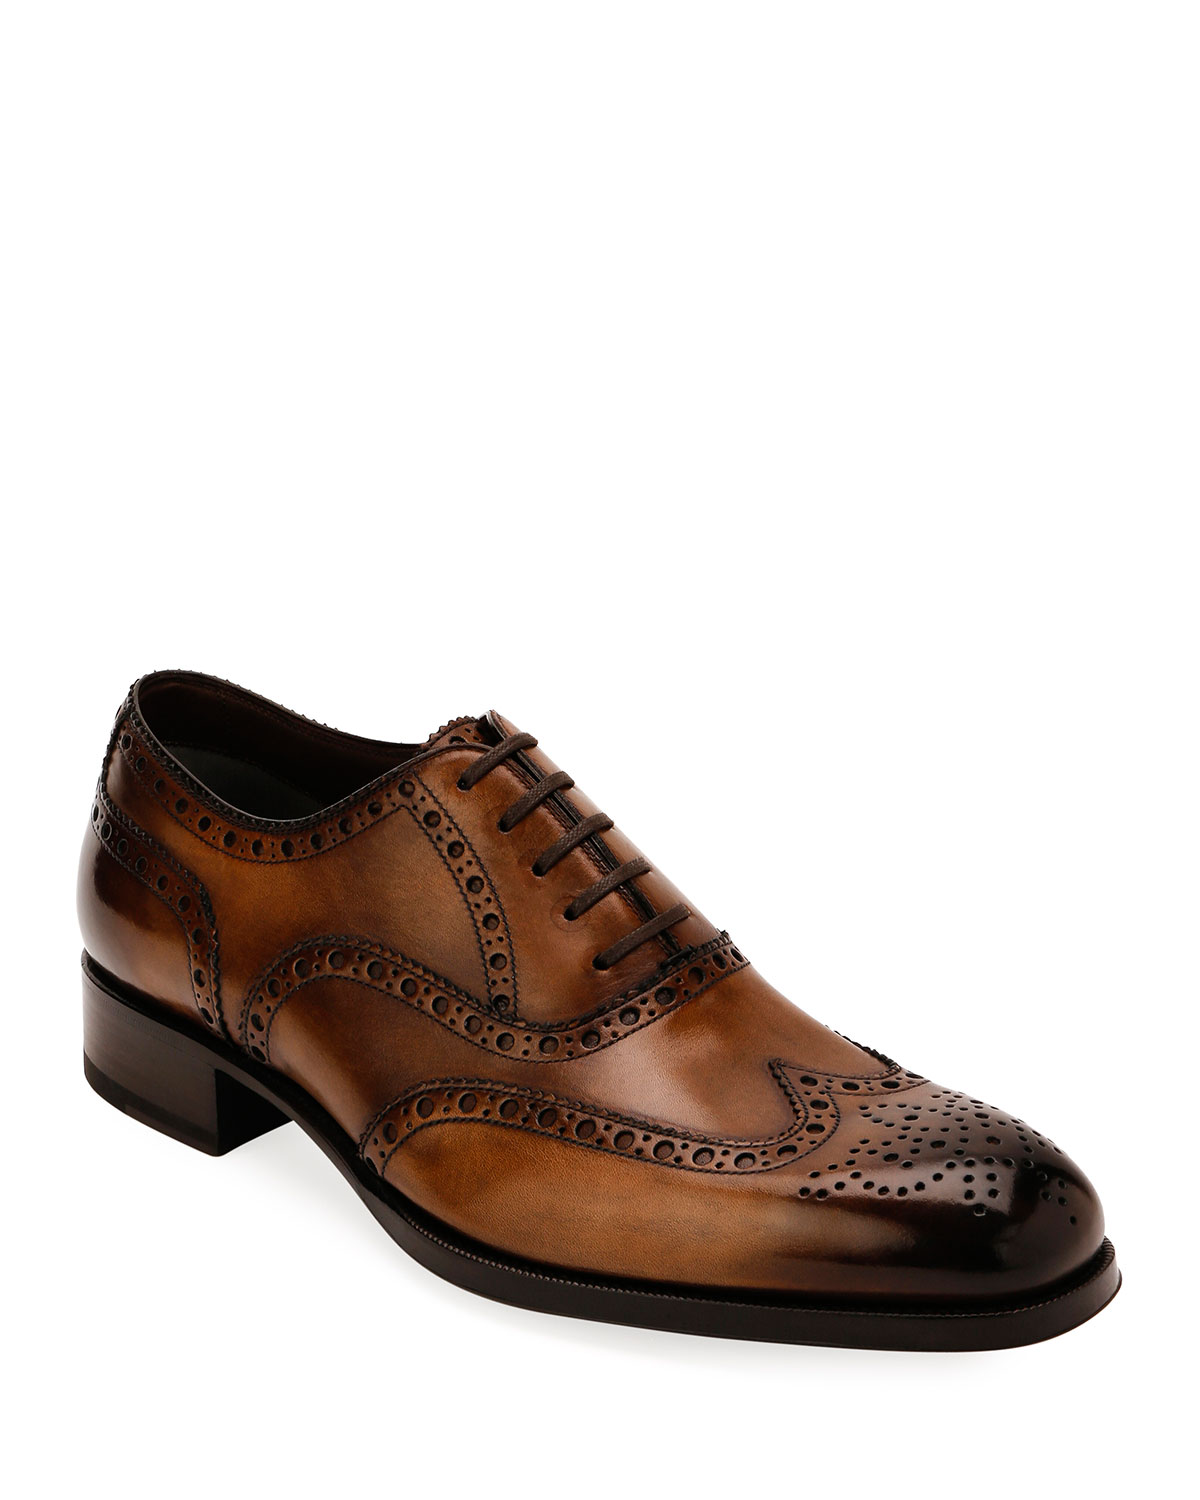 Tom Ford Dresses Men's Dress Shoes With Detailing